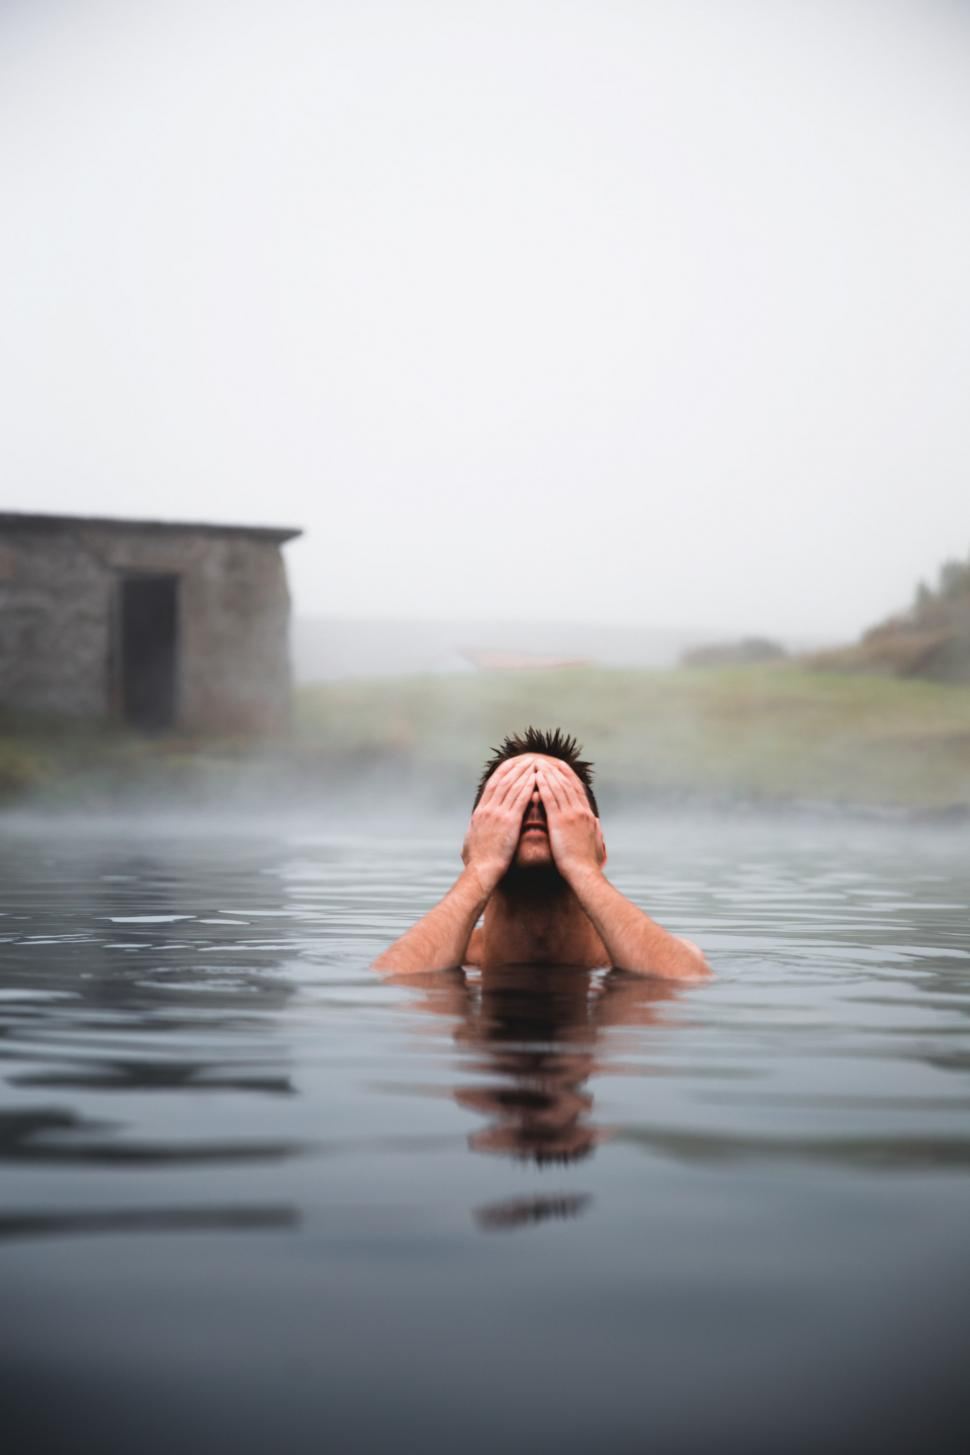 Download Free Stock HD Photo of A young caucasian man in a volcanic pool Online